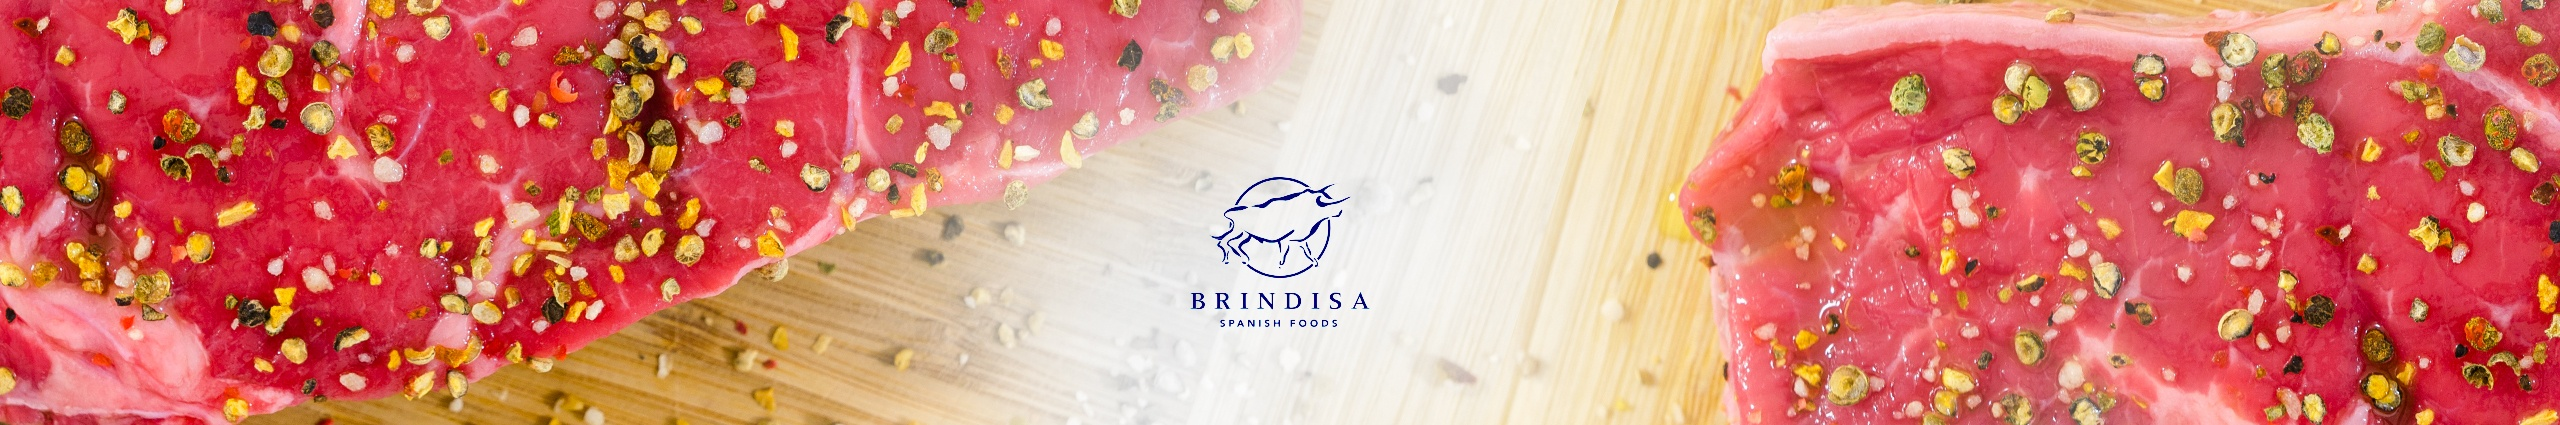 APPSeCONNECT-brindisa-success story